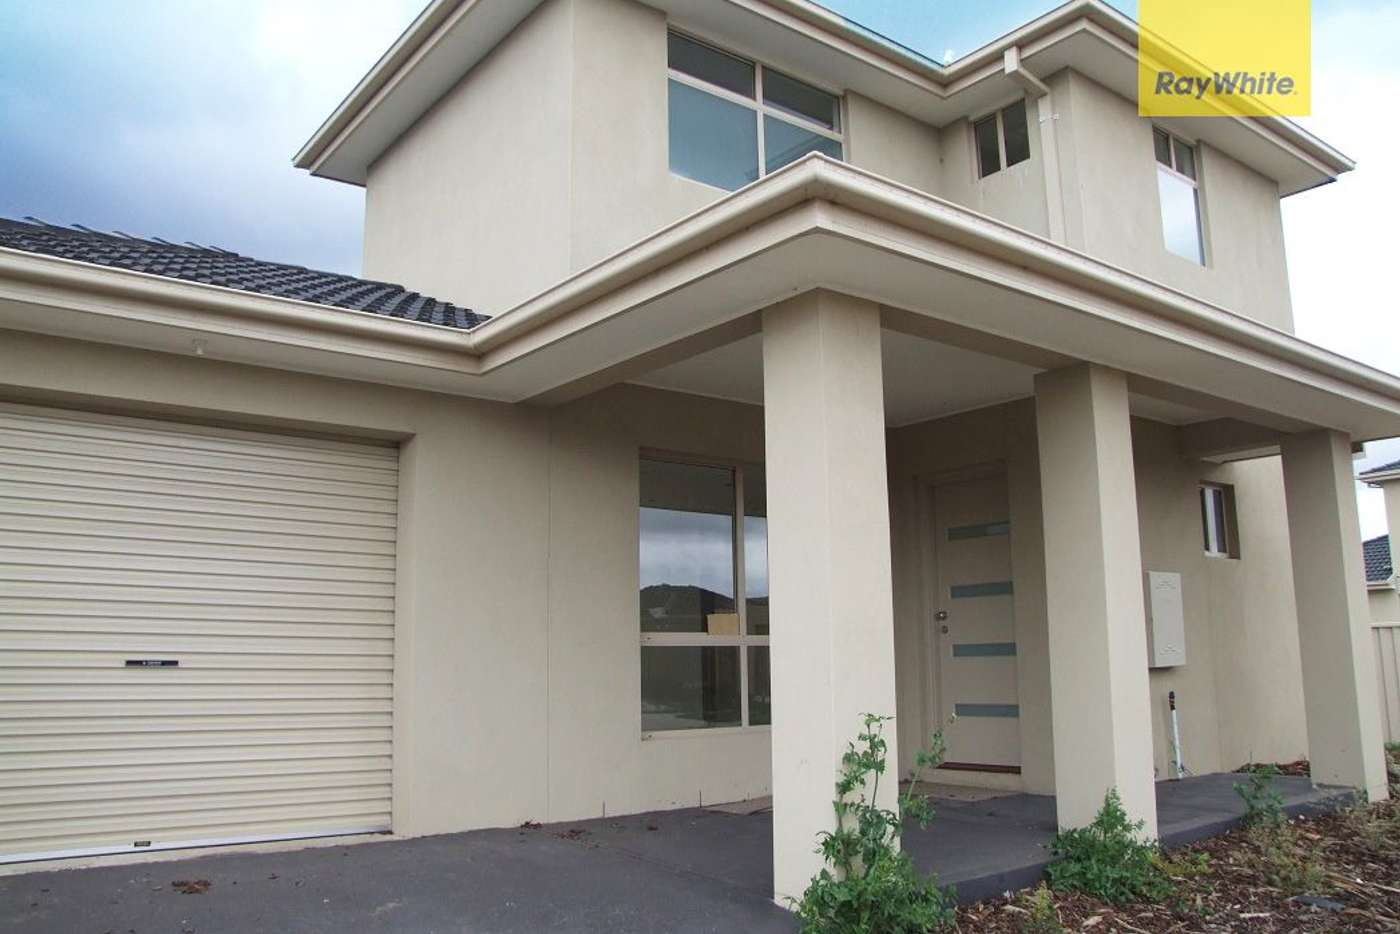 Main view of Homely townhouse listing, 5 Starflower Way, Truganina VIC 3029